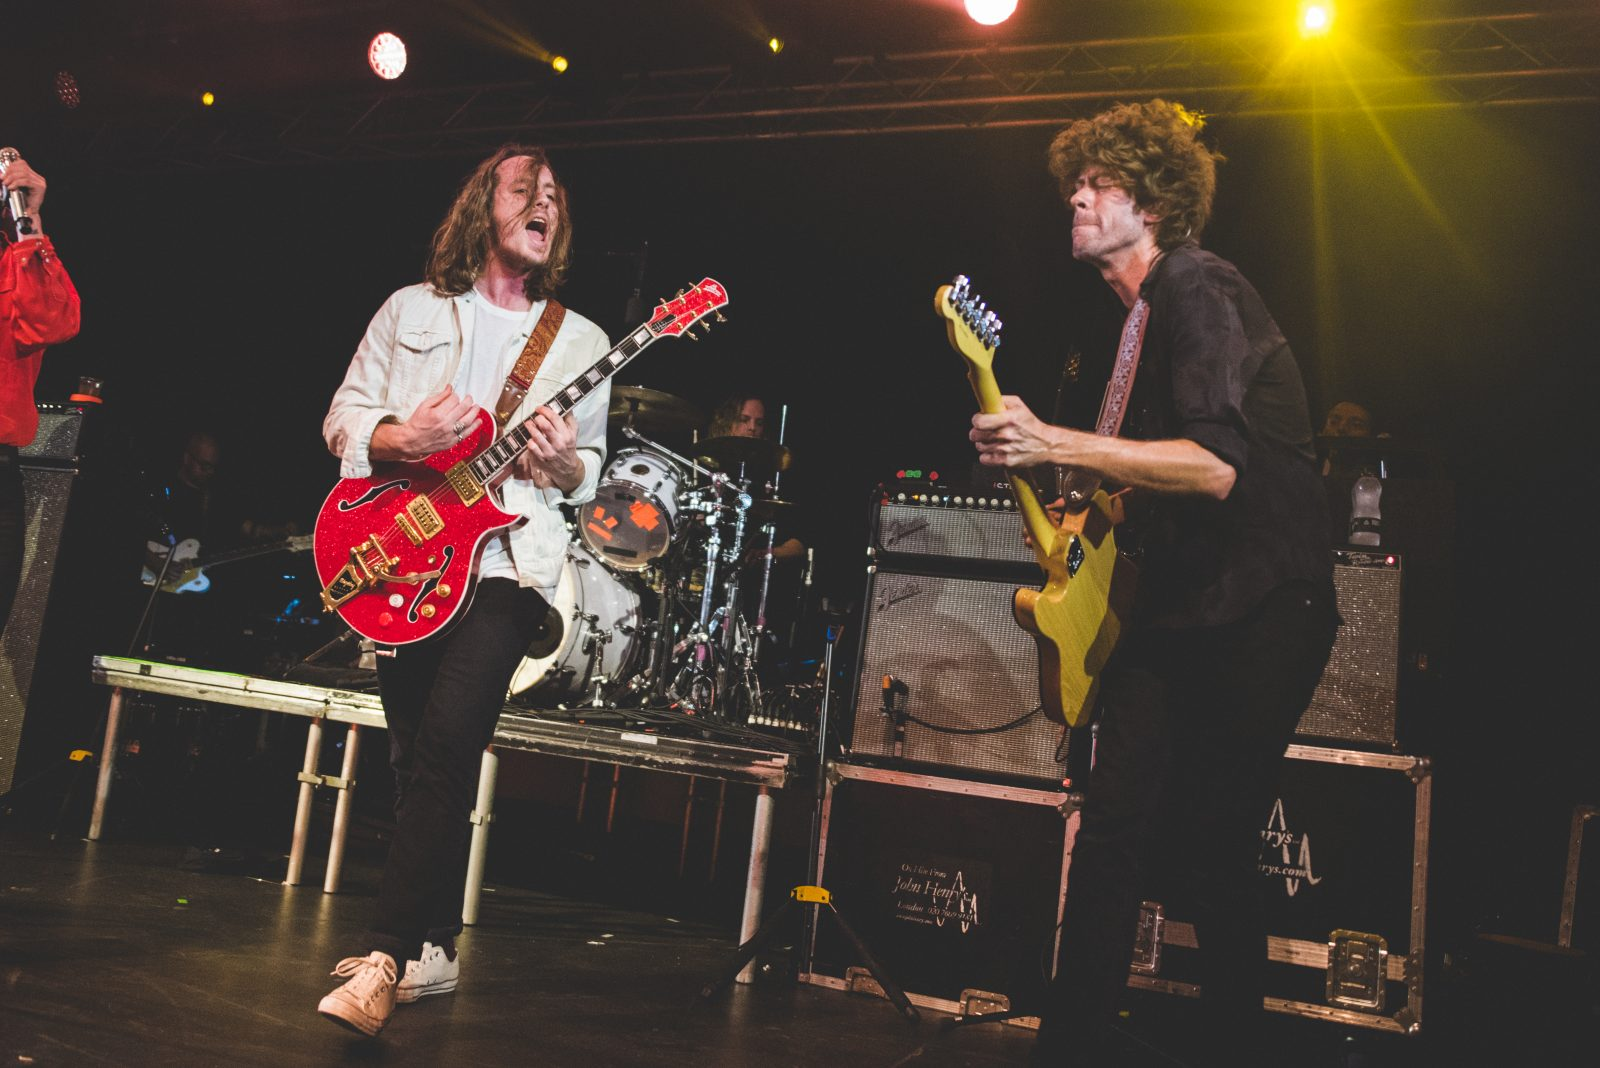 An Evening With: Cage The Elephant